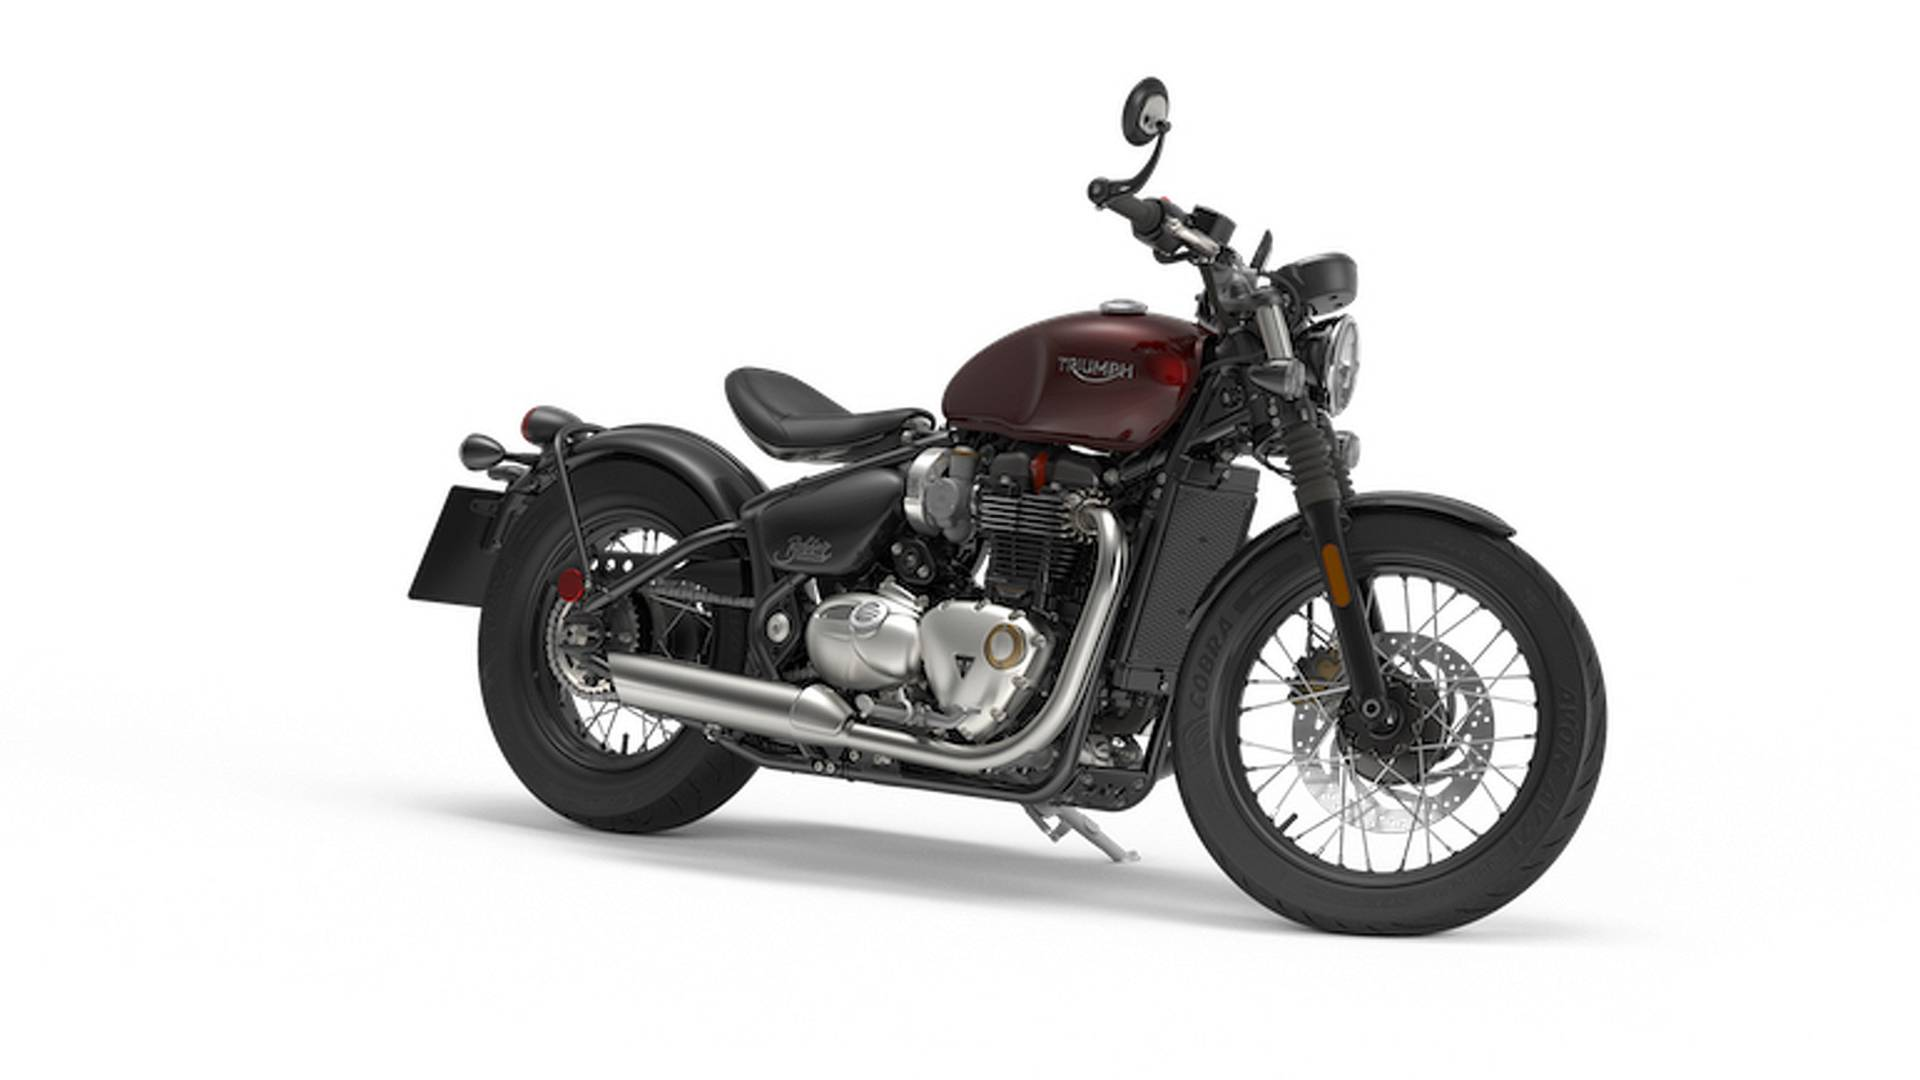 Triumph Bonneville Bobber What Do You Want To Know